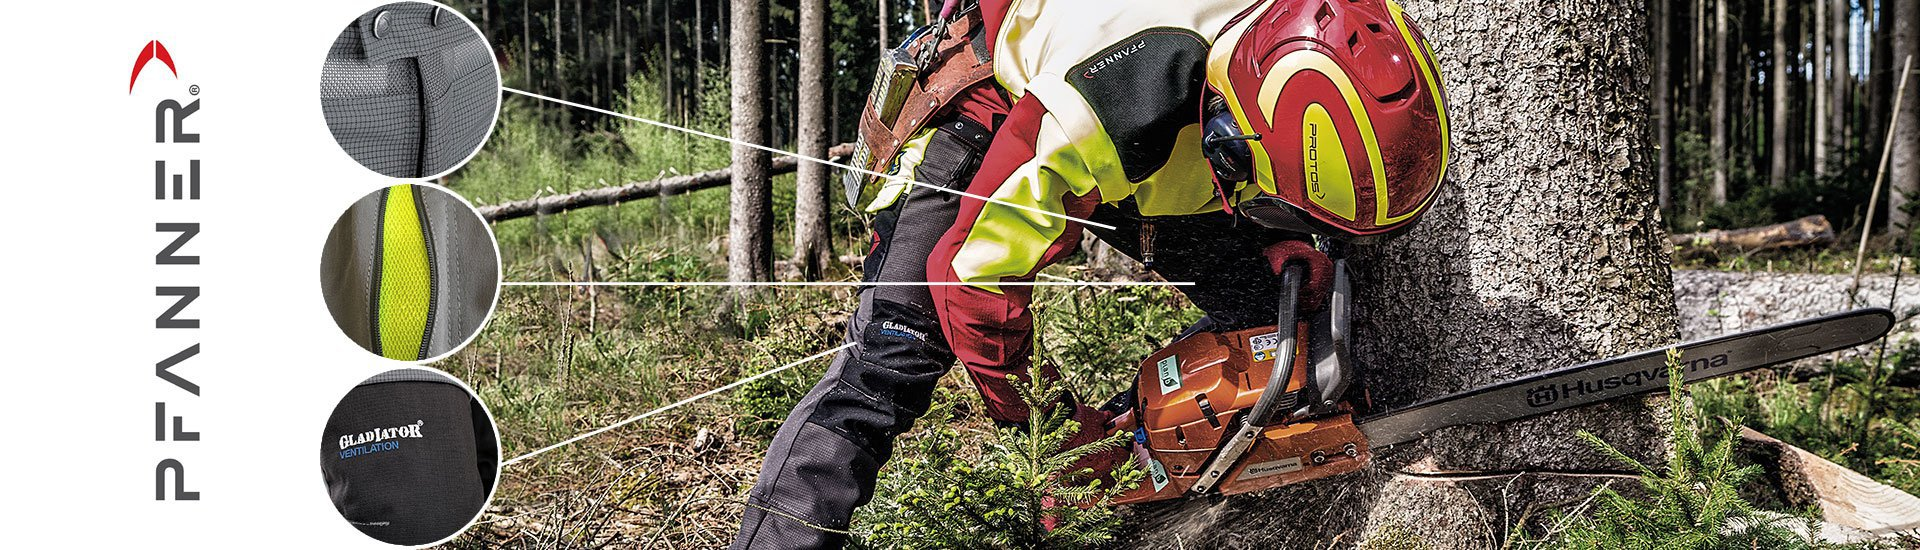 Pfanner Protective Chainsaw and Workwear Clothing and Accessories